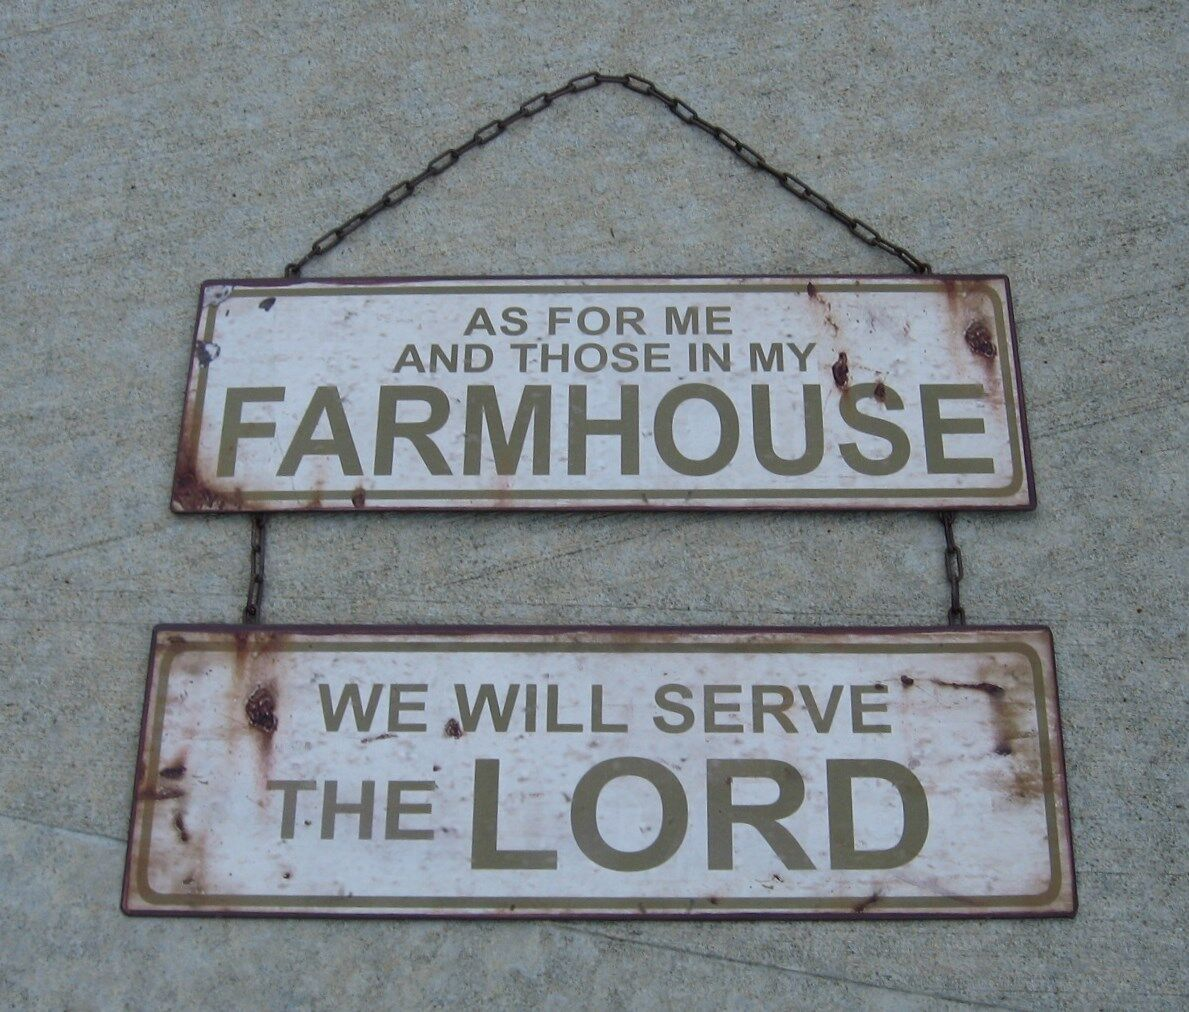 FARMHOUSE Hanging Metal SIGN*Primitive/French Country